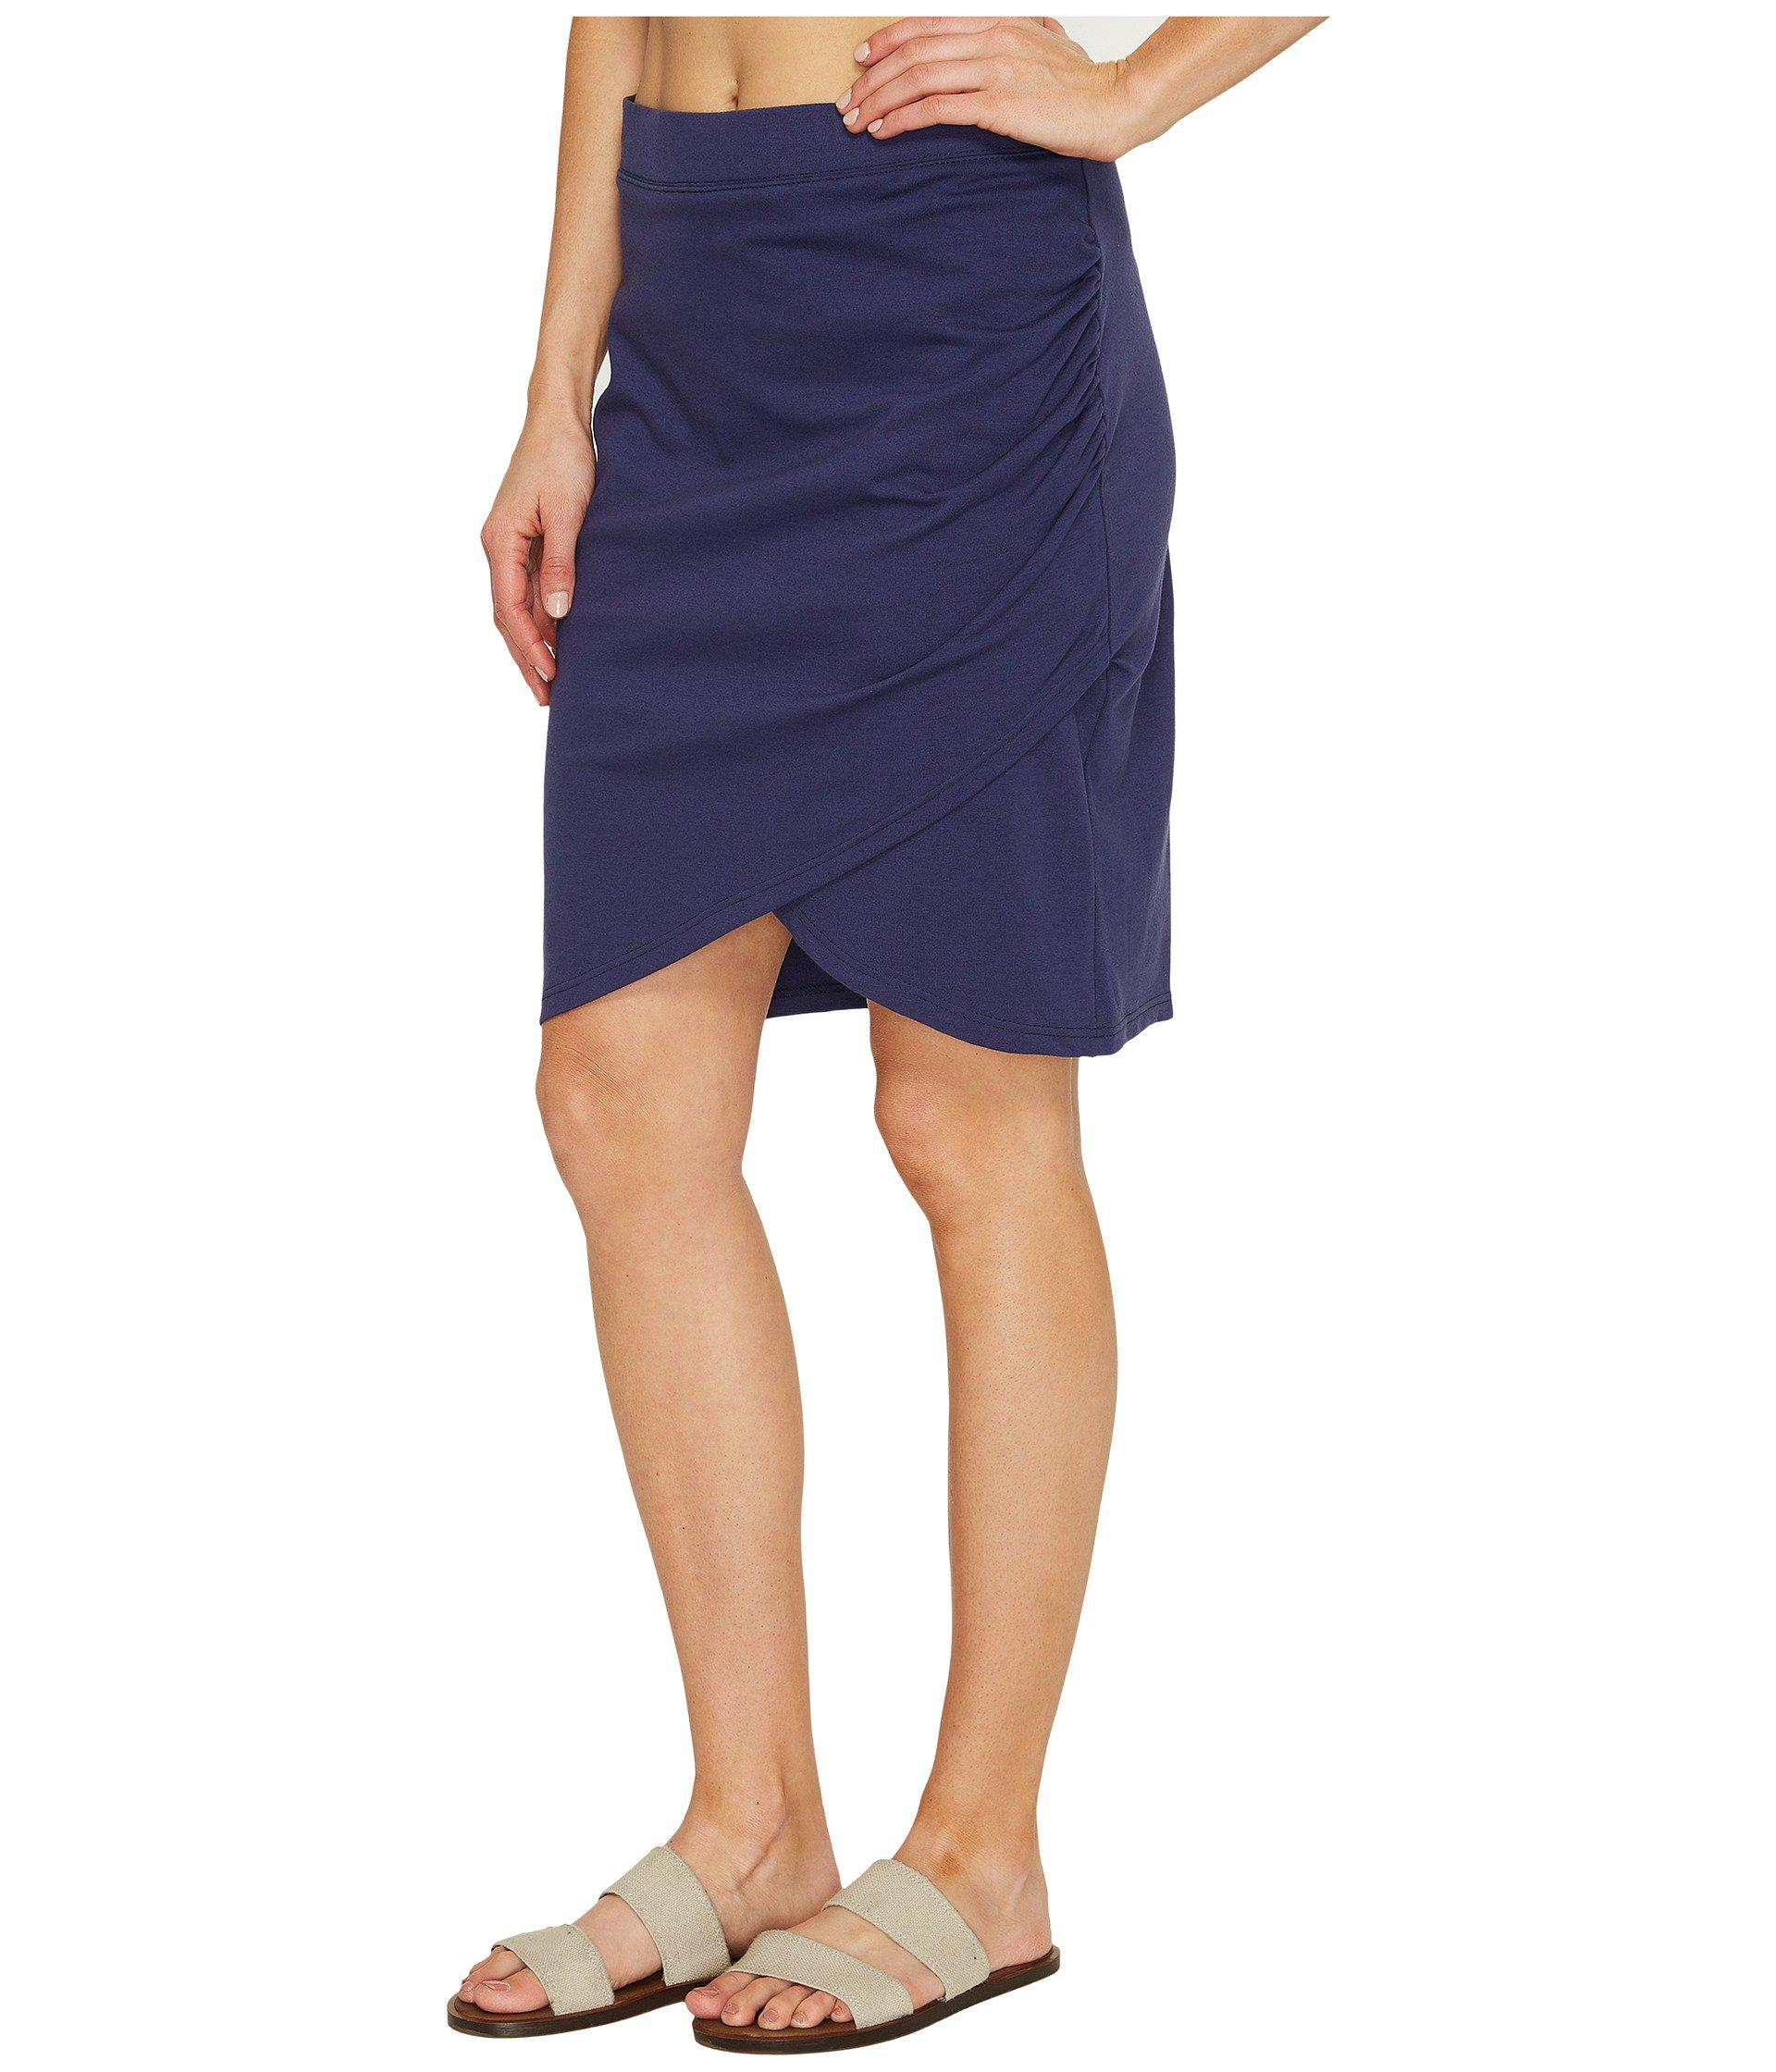 e2d8f534e9 Lyst - Fig Clothing Far Skirt in Blue - Save 44%